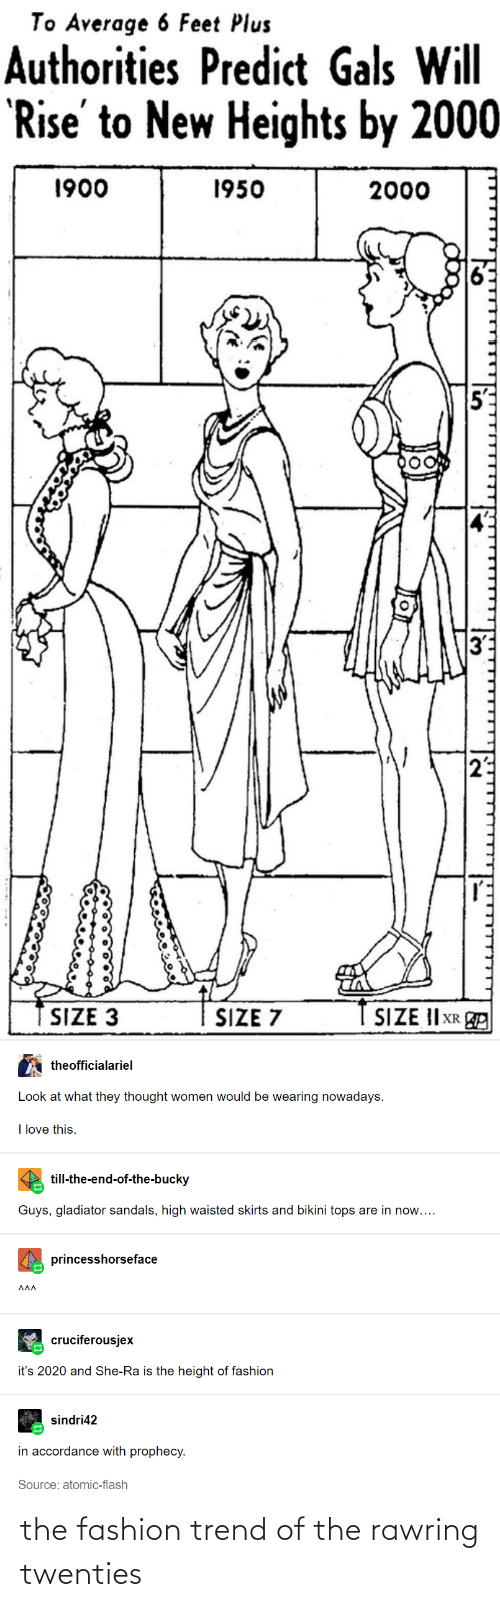 accordance: To Average 6 Feet Plus  Authorities Predict Gals Will  'Rise' to New Heights by 2000  1900  1950  2000  SIZE II XR E  SIZE 3  SIZE 7  theofficialariel  Look at what they thought women would be wearing nowadays.  I love this.  till-the-end-of-the-bucky  Guys, gladiator sandals, high waisted skirts and bikini tops are in now....  princesshorseface  ΛΛΛ  cruciferousjex  it's 2020 and She-Ra is the height of fashion  sindri42  in accordance with prophecy.  Source: atomic-flash the fashion trend of the rawring twenties